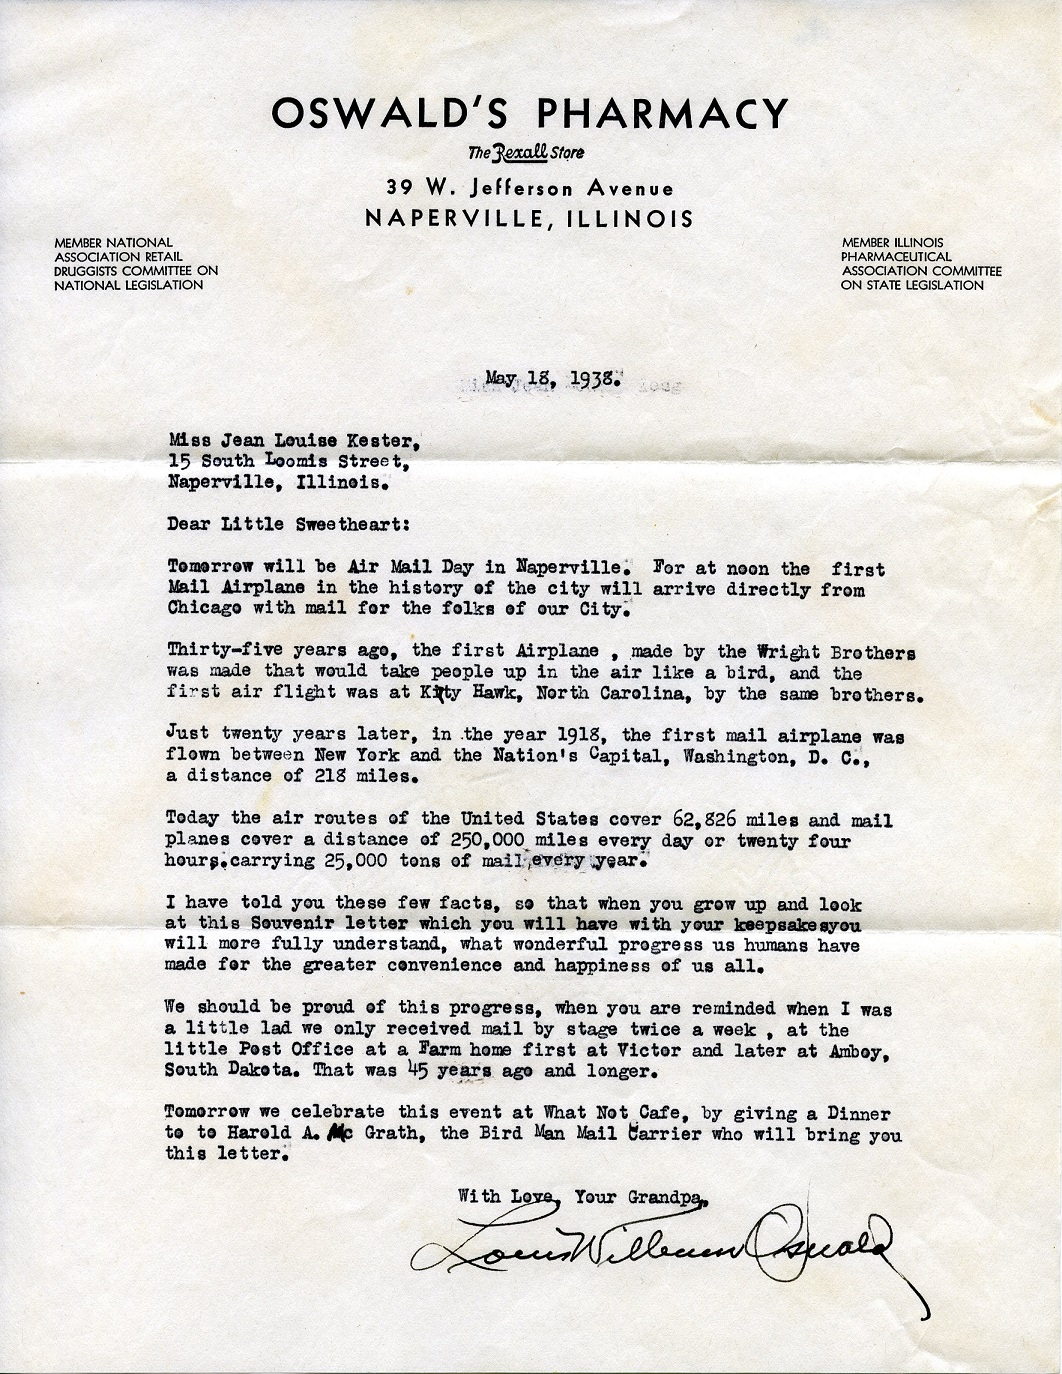 The letter from Louis Oswald to Jean Kester.